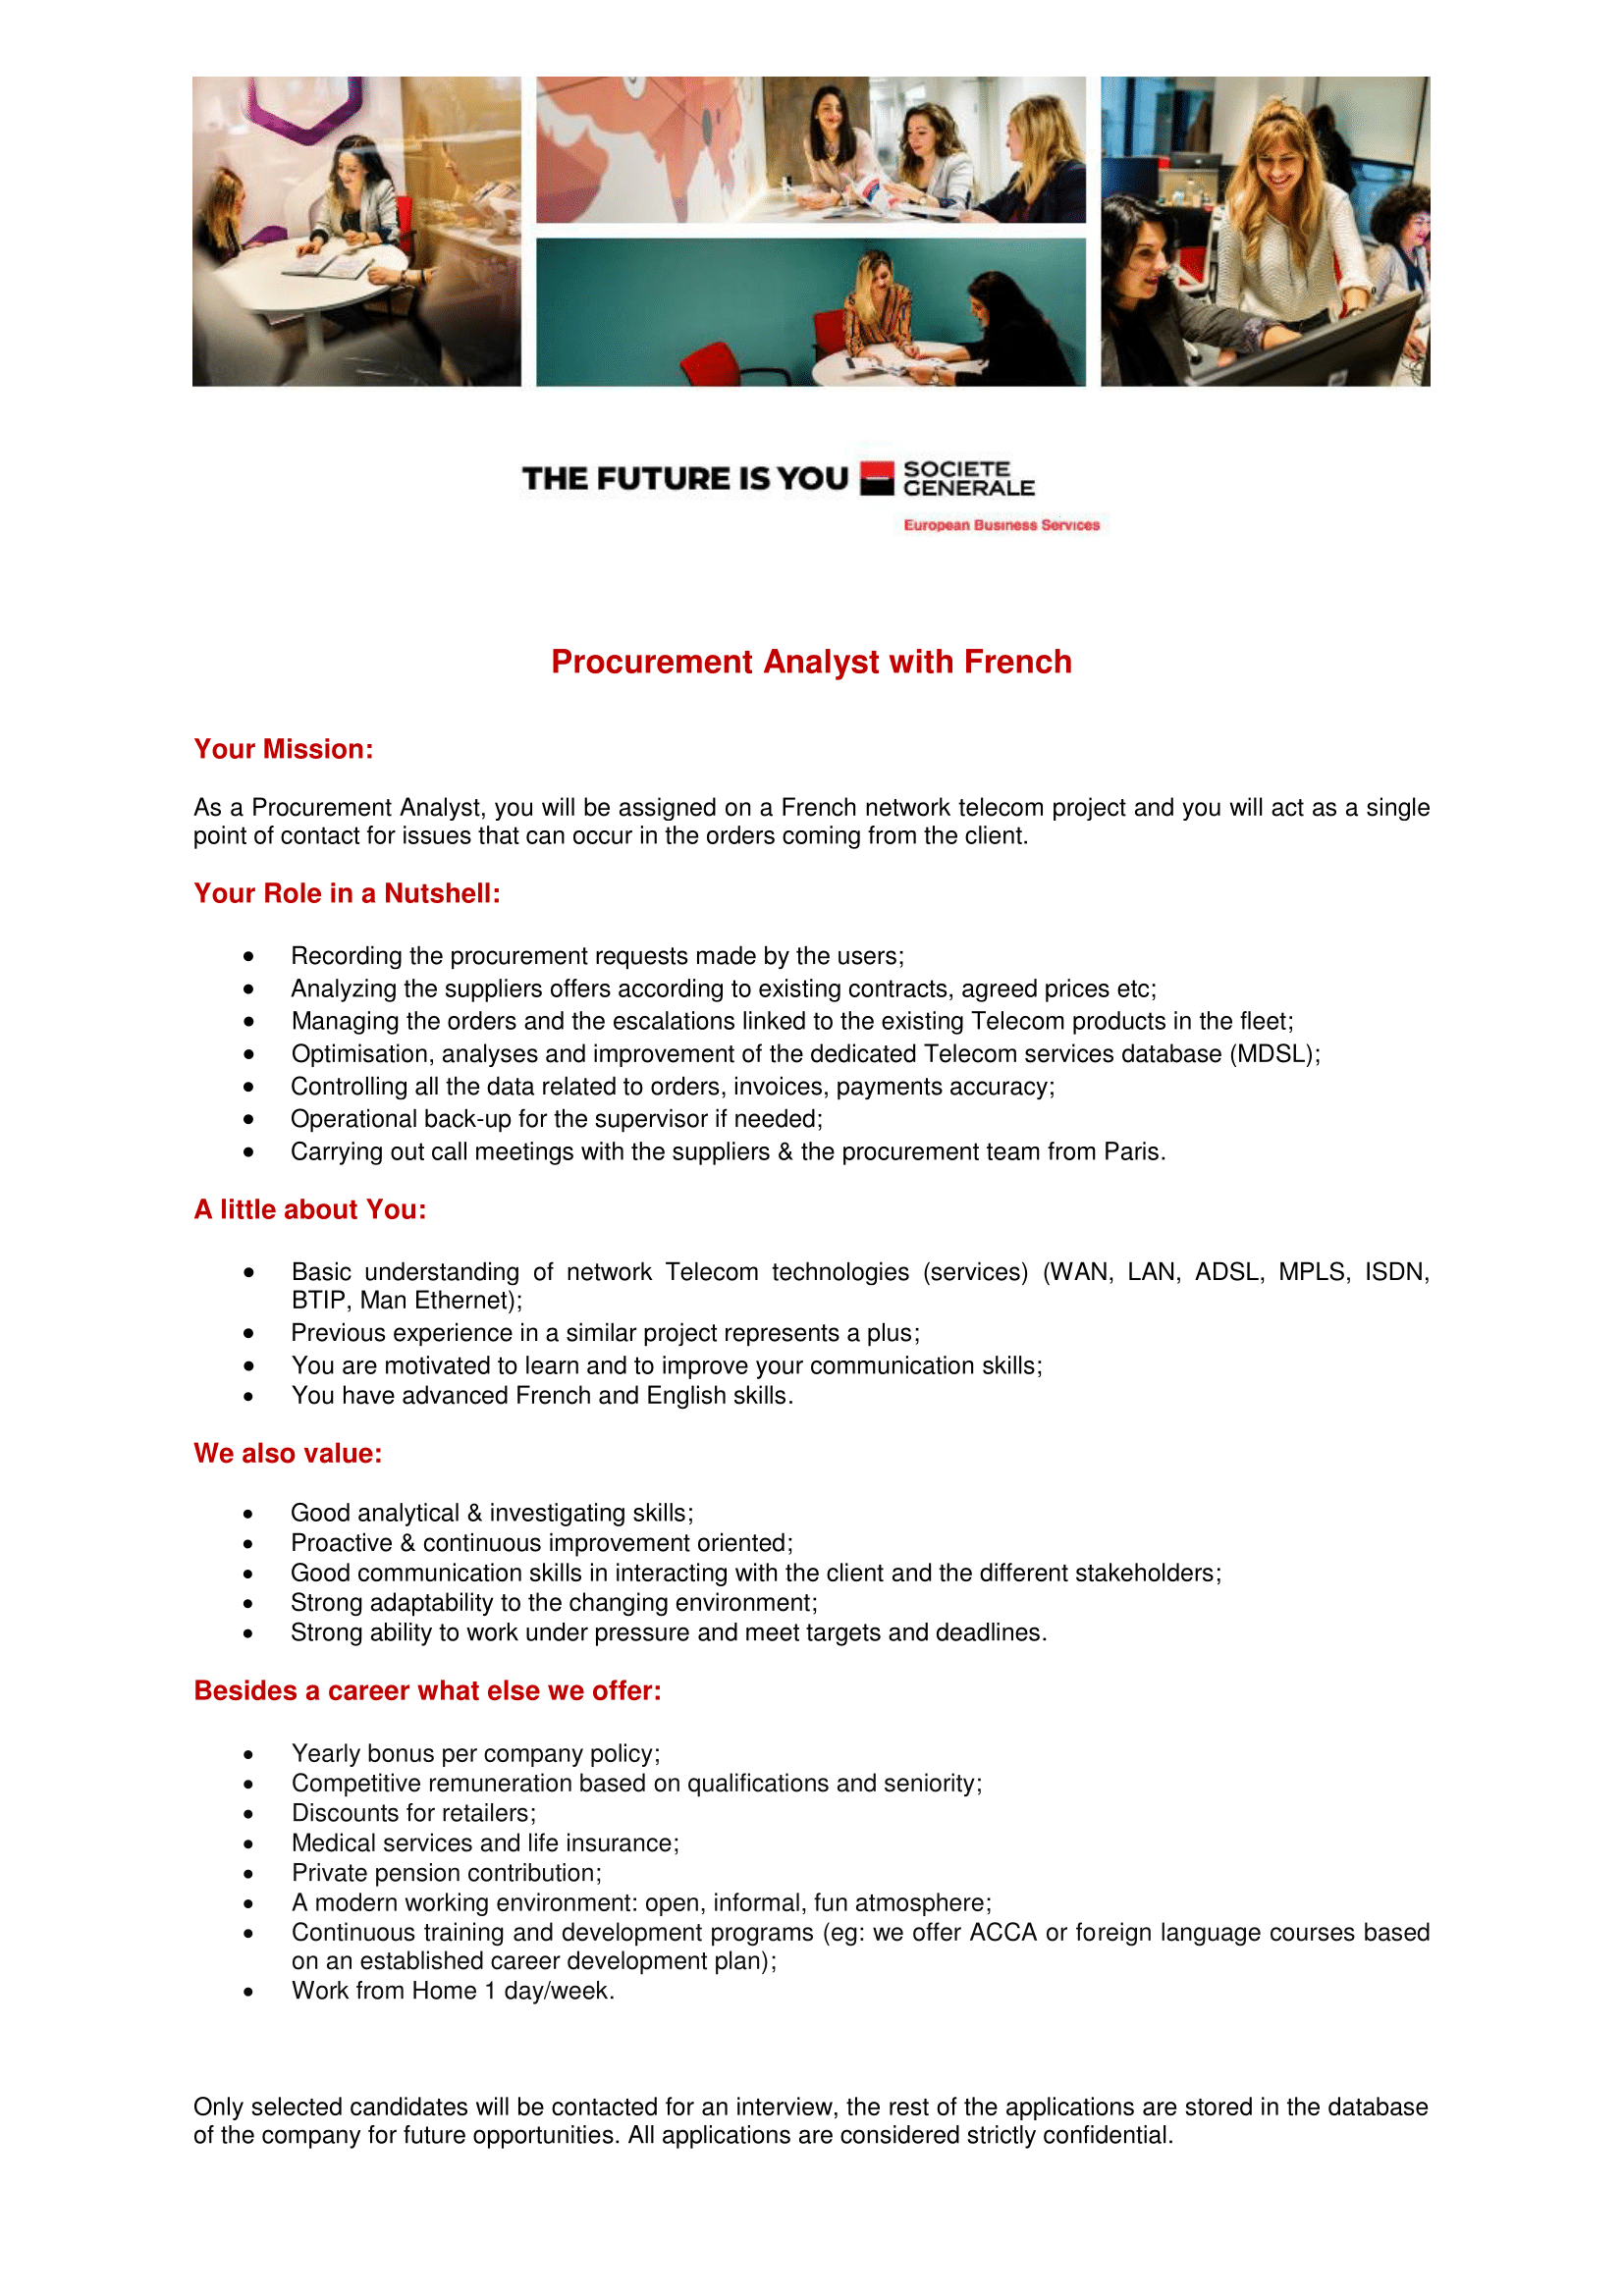 ProcurementAnalyst with French - Telecom Project